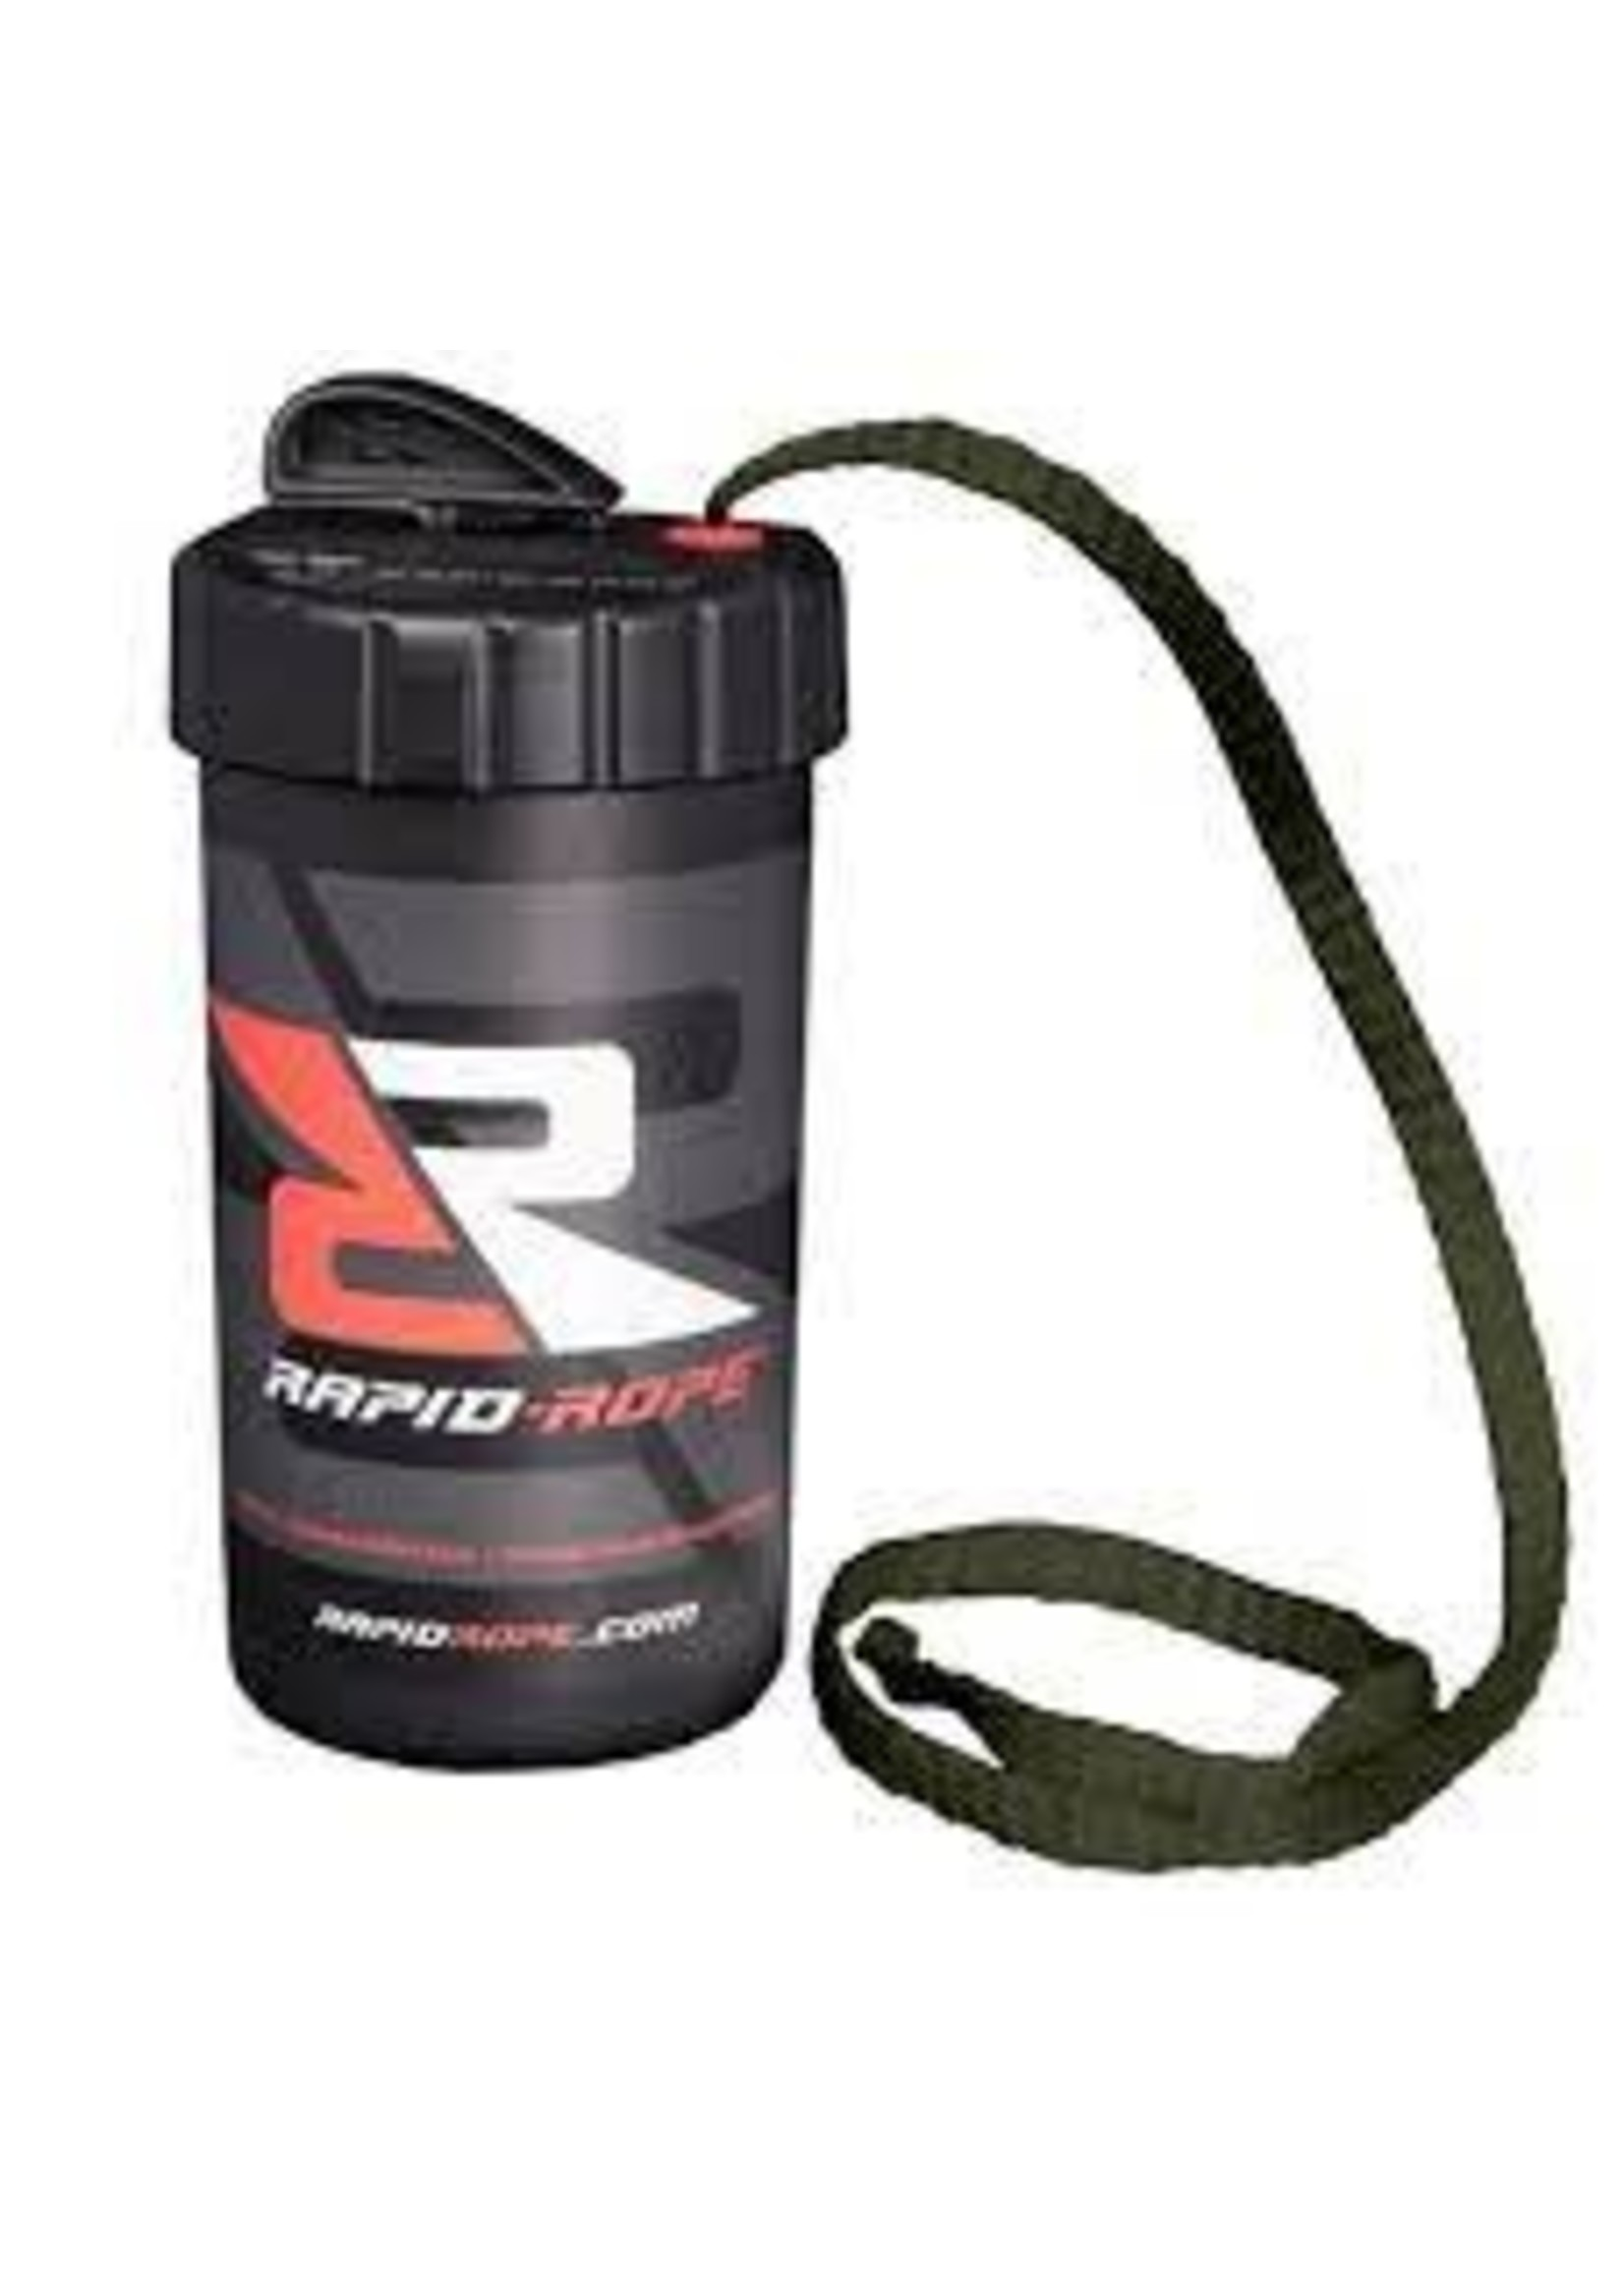 Rapid Rope Rapid Rope Canister